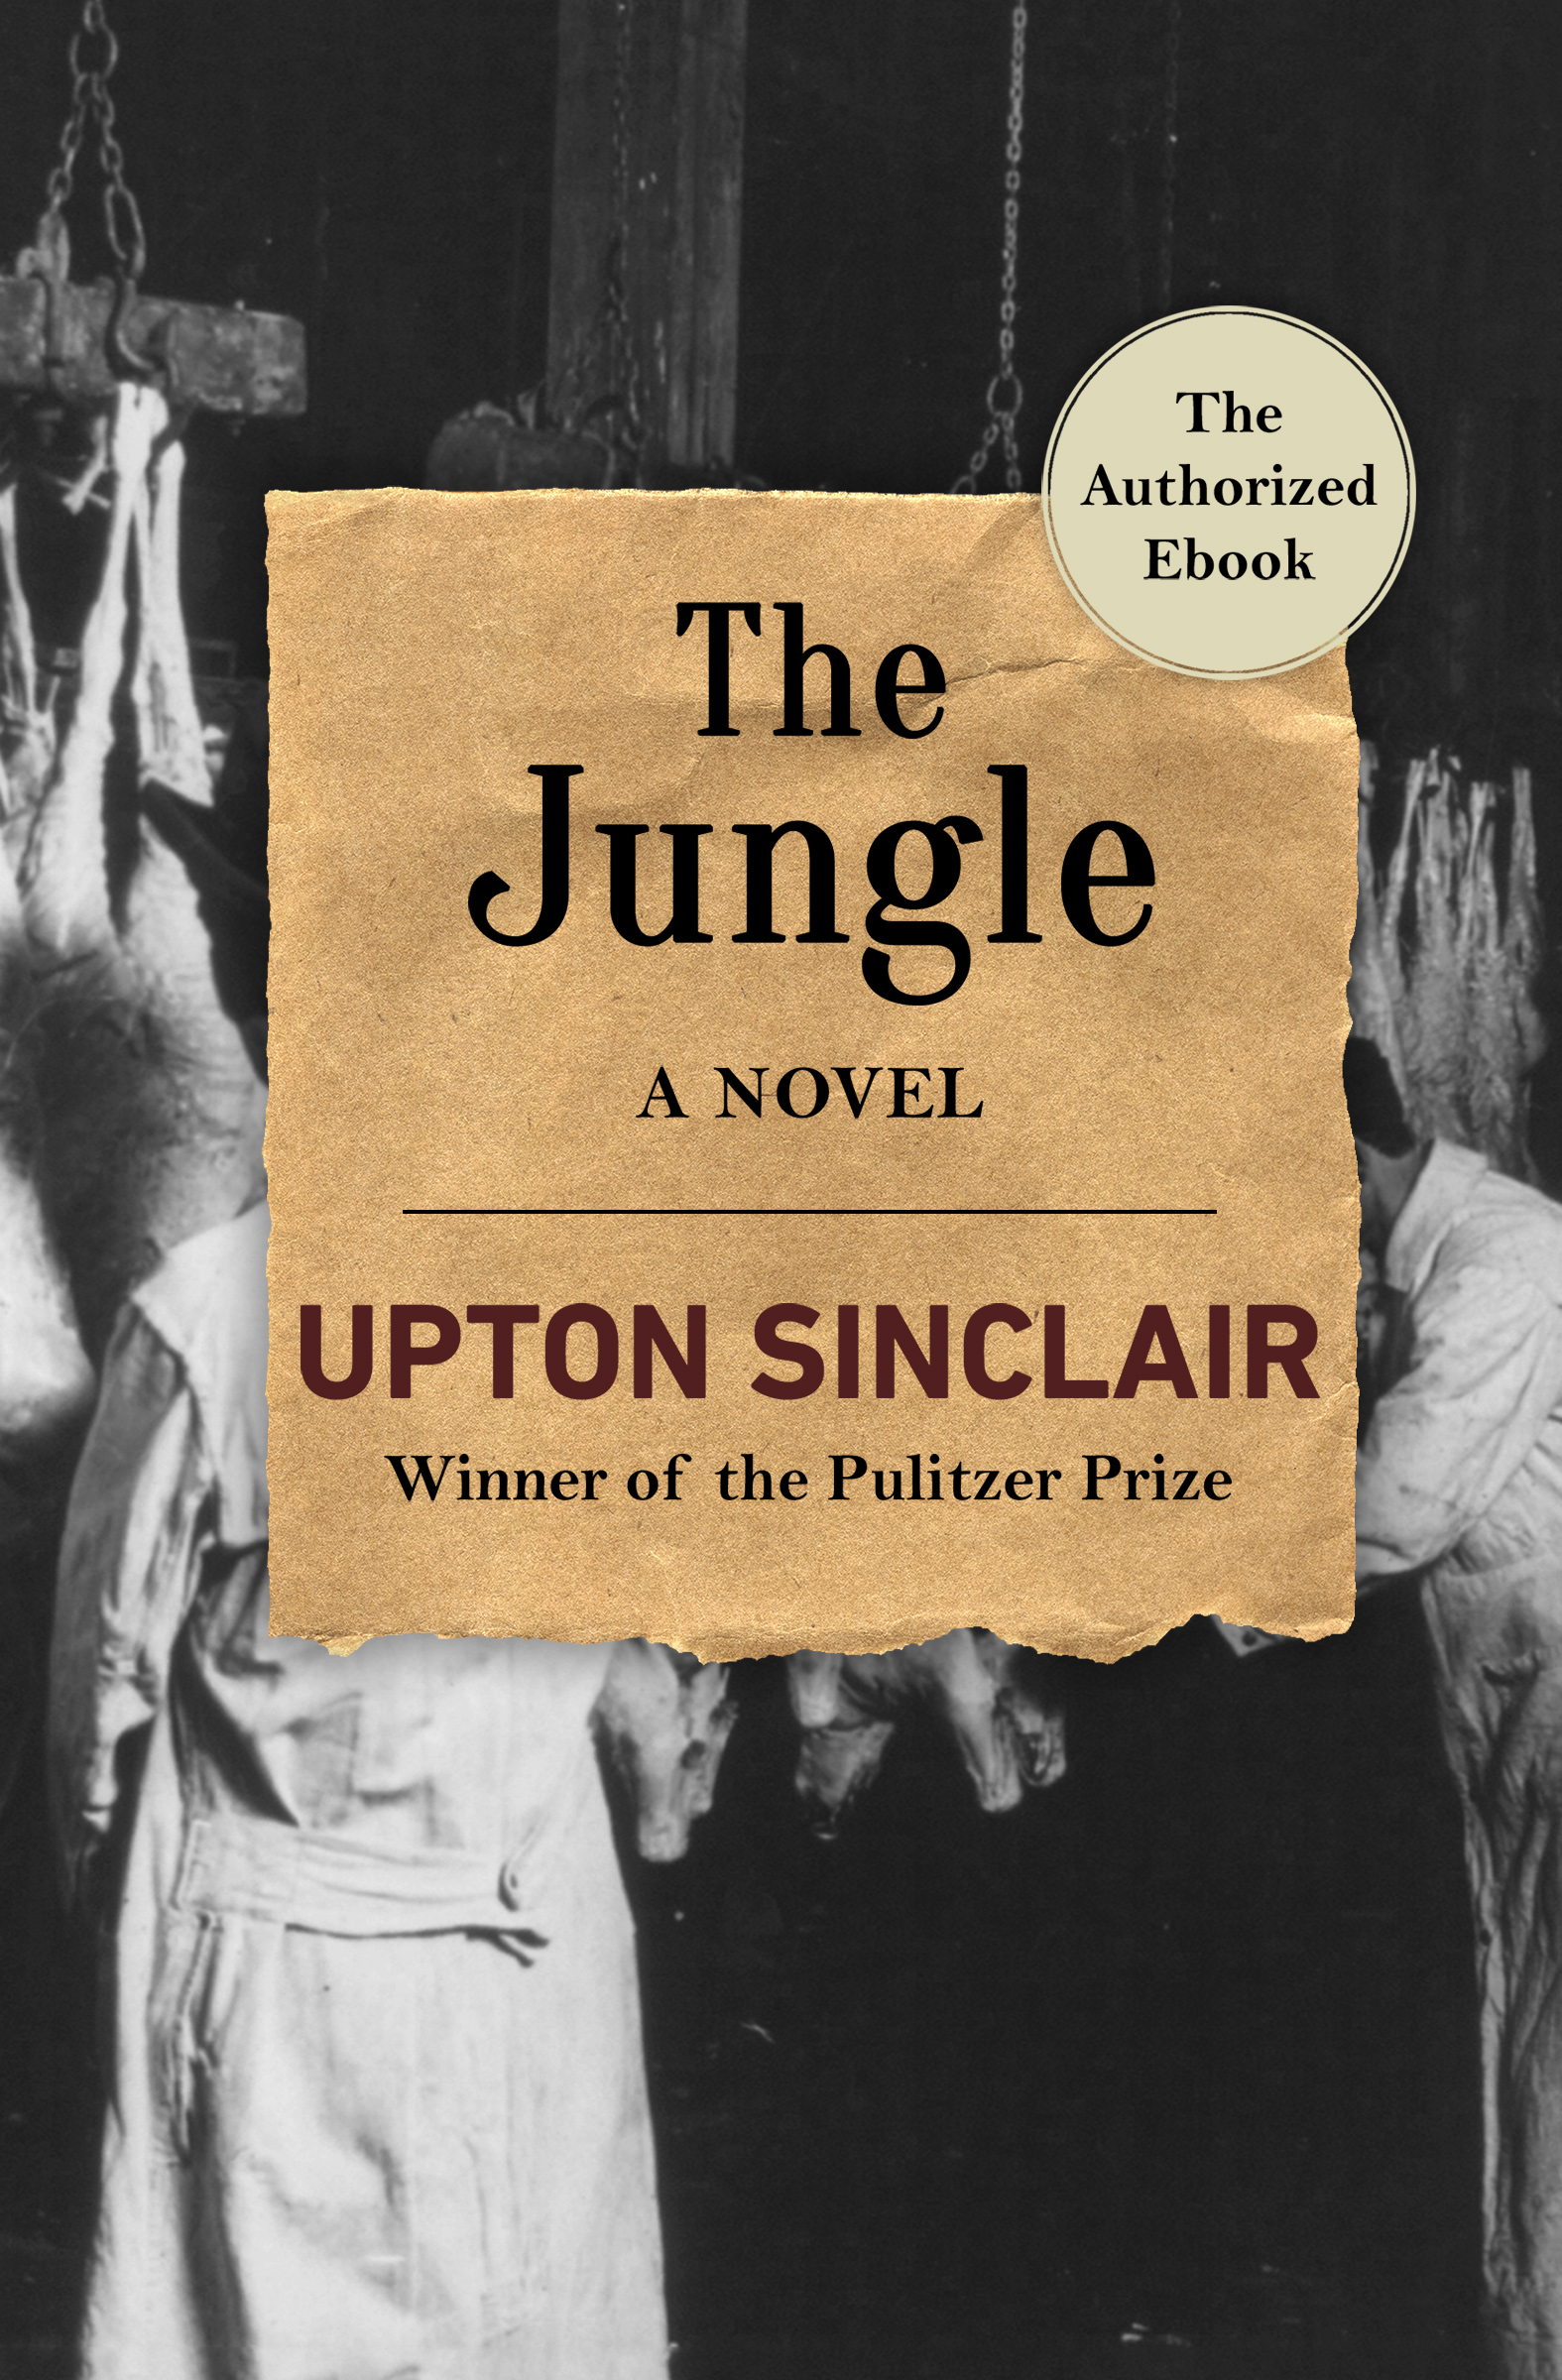 a literary analysis of the story of the jungle video The jungle book (1967) the story of the jungle book concerns a young man-cub named mowgli amazon video watch movies & tv online.